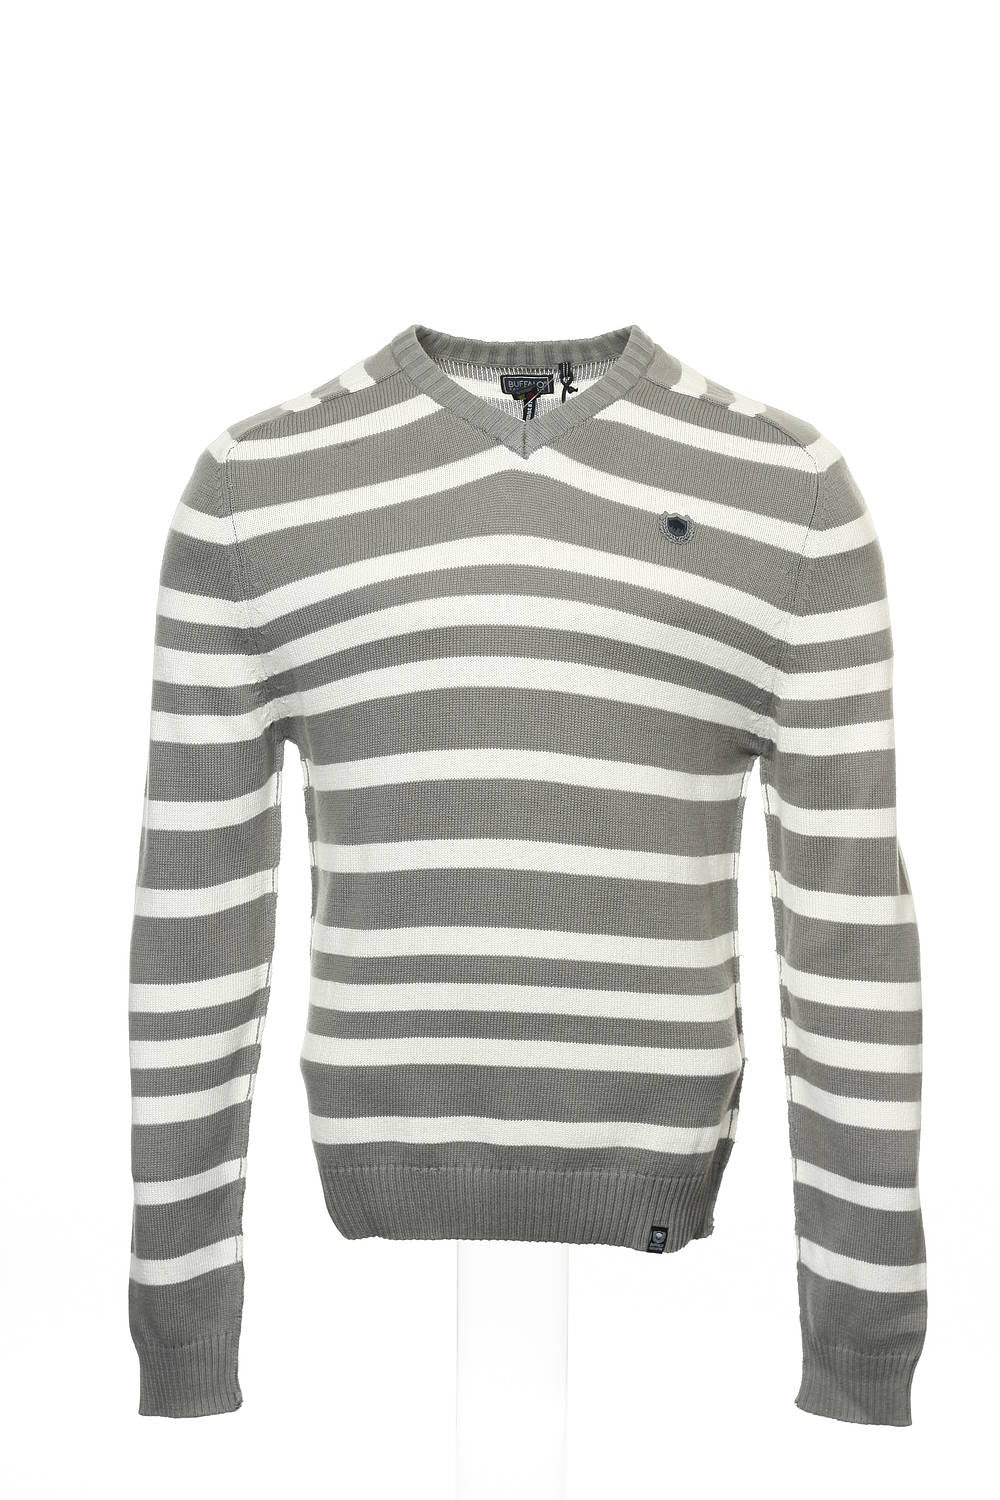 Buffalo by David Bitton (Warner) Mens Pewter Wide Striped V-Neck Sweater